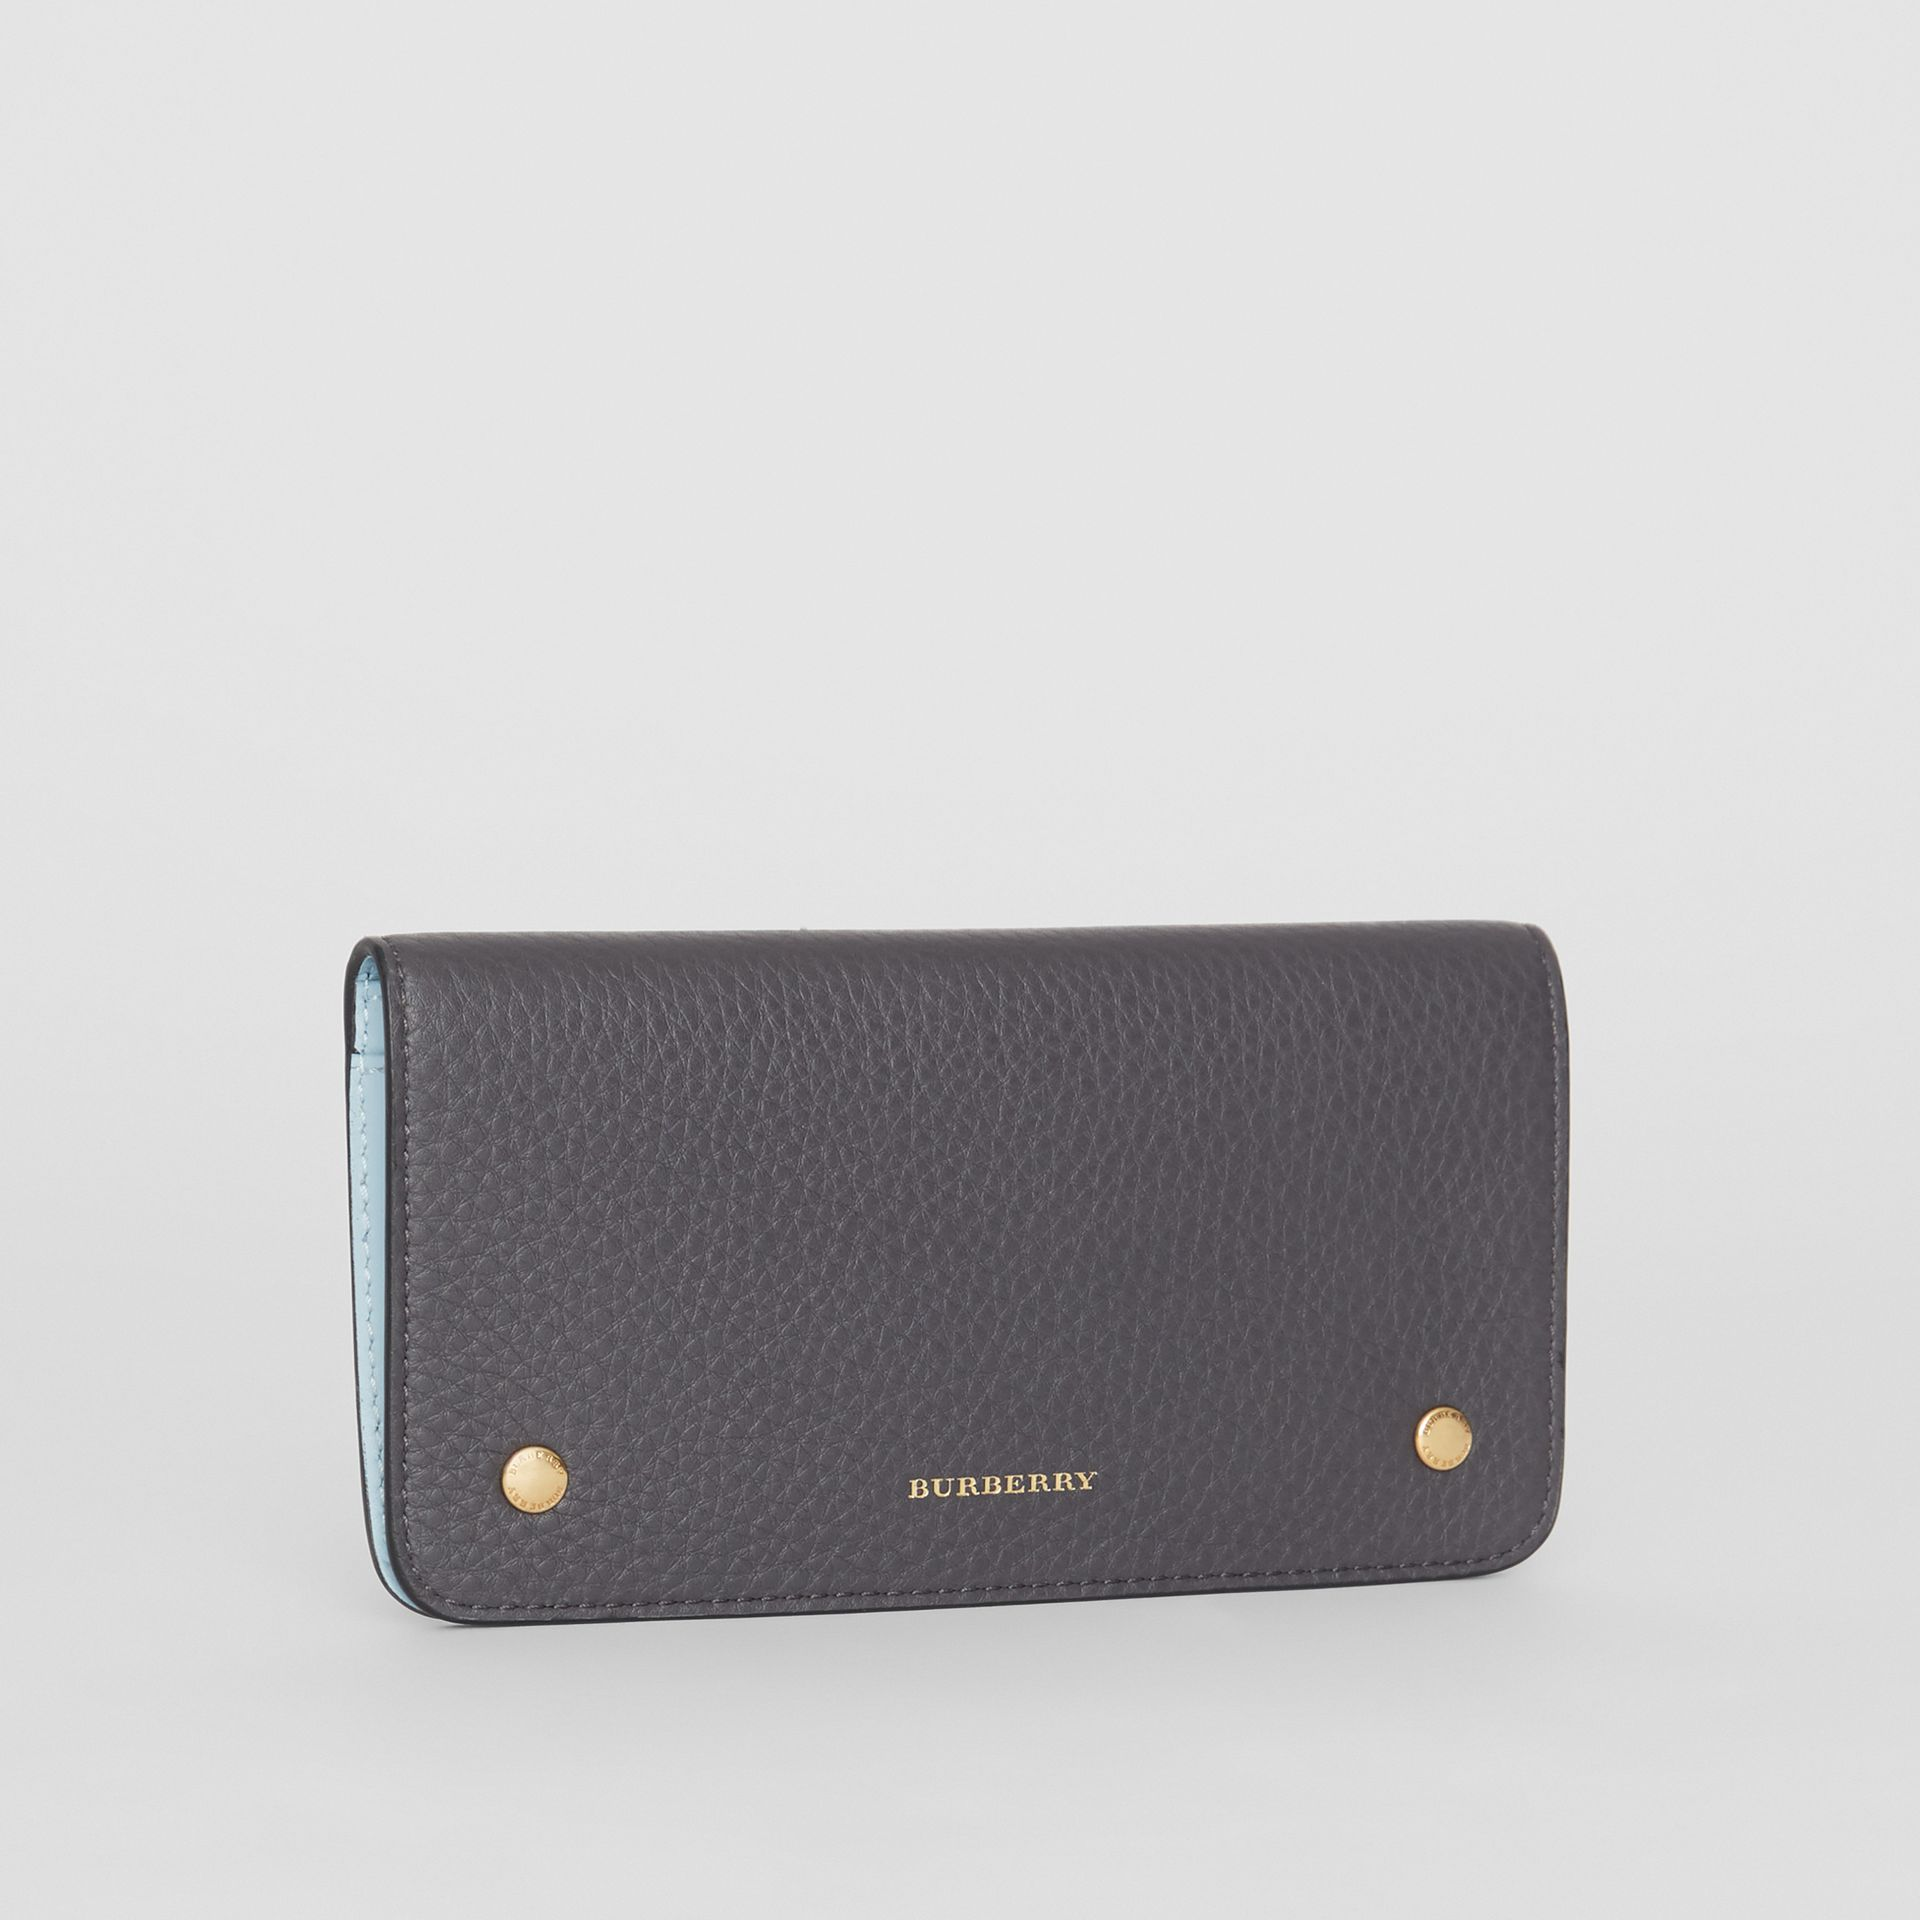 Leather Phone Wallet in Charcoal Grey - Women | Burberry Singapore - gallery image 4